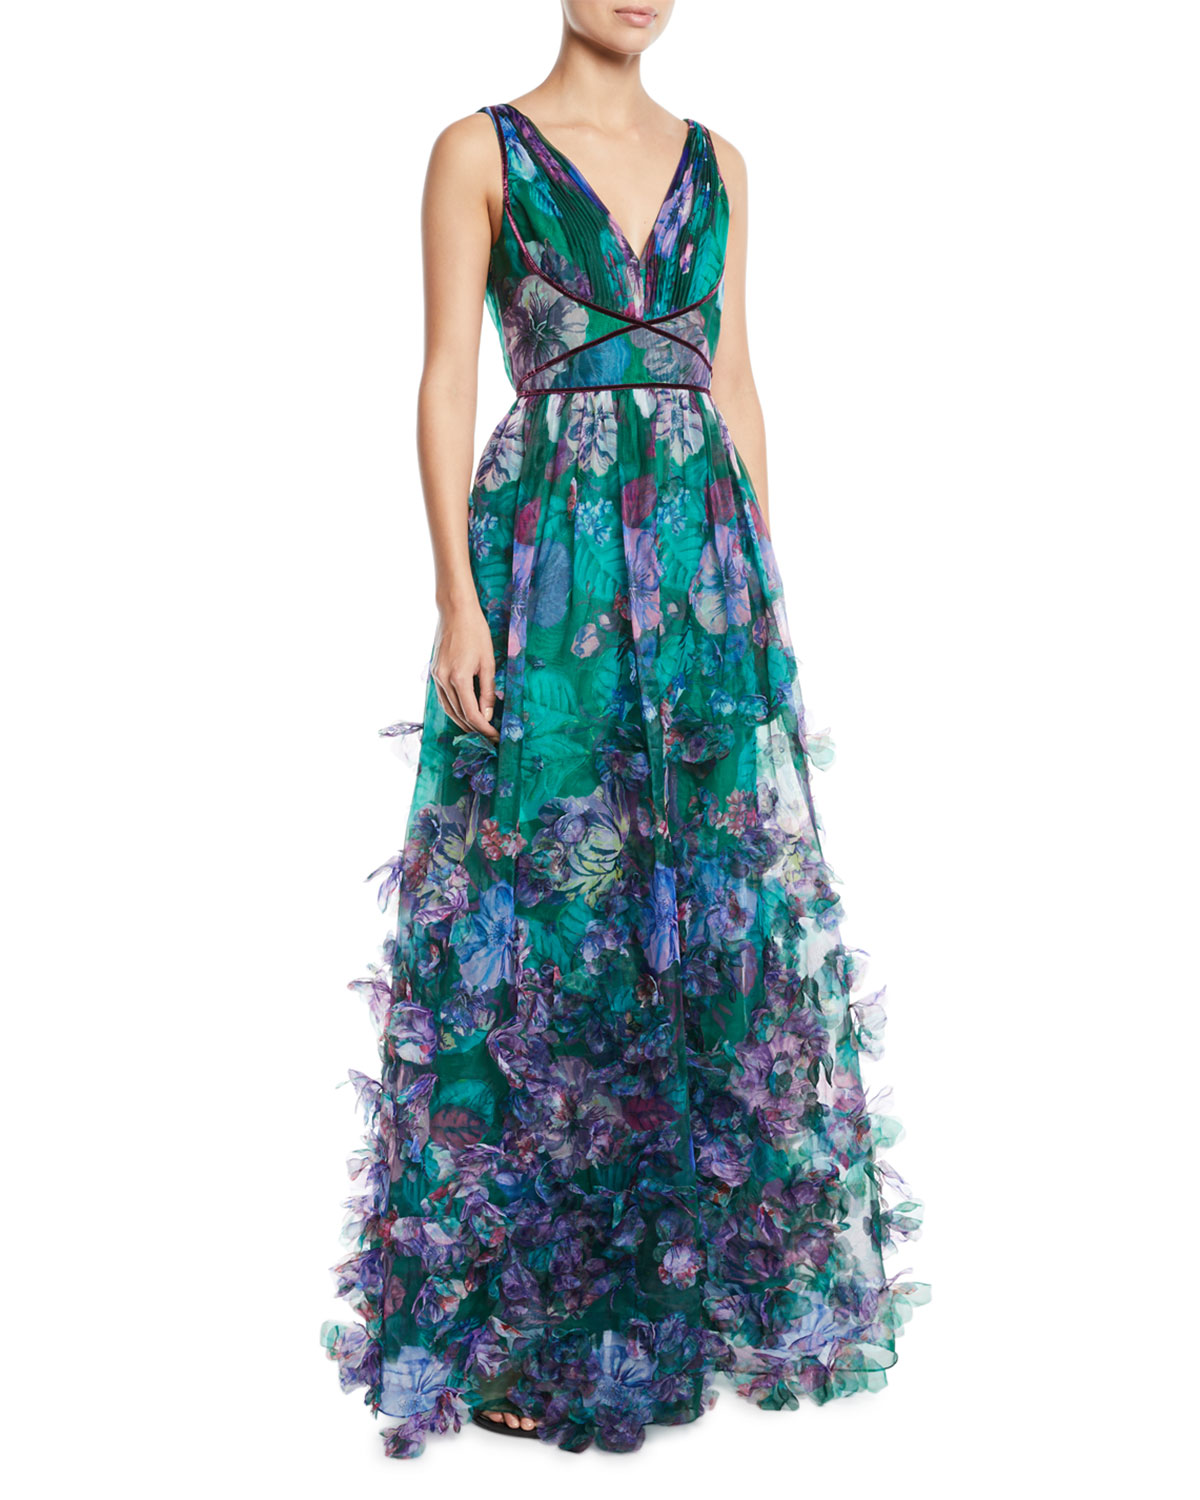 Marchesa Notte Organza Ball Gown w/ 3D Floral Embroidery   Neiman Marcus